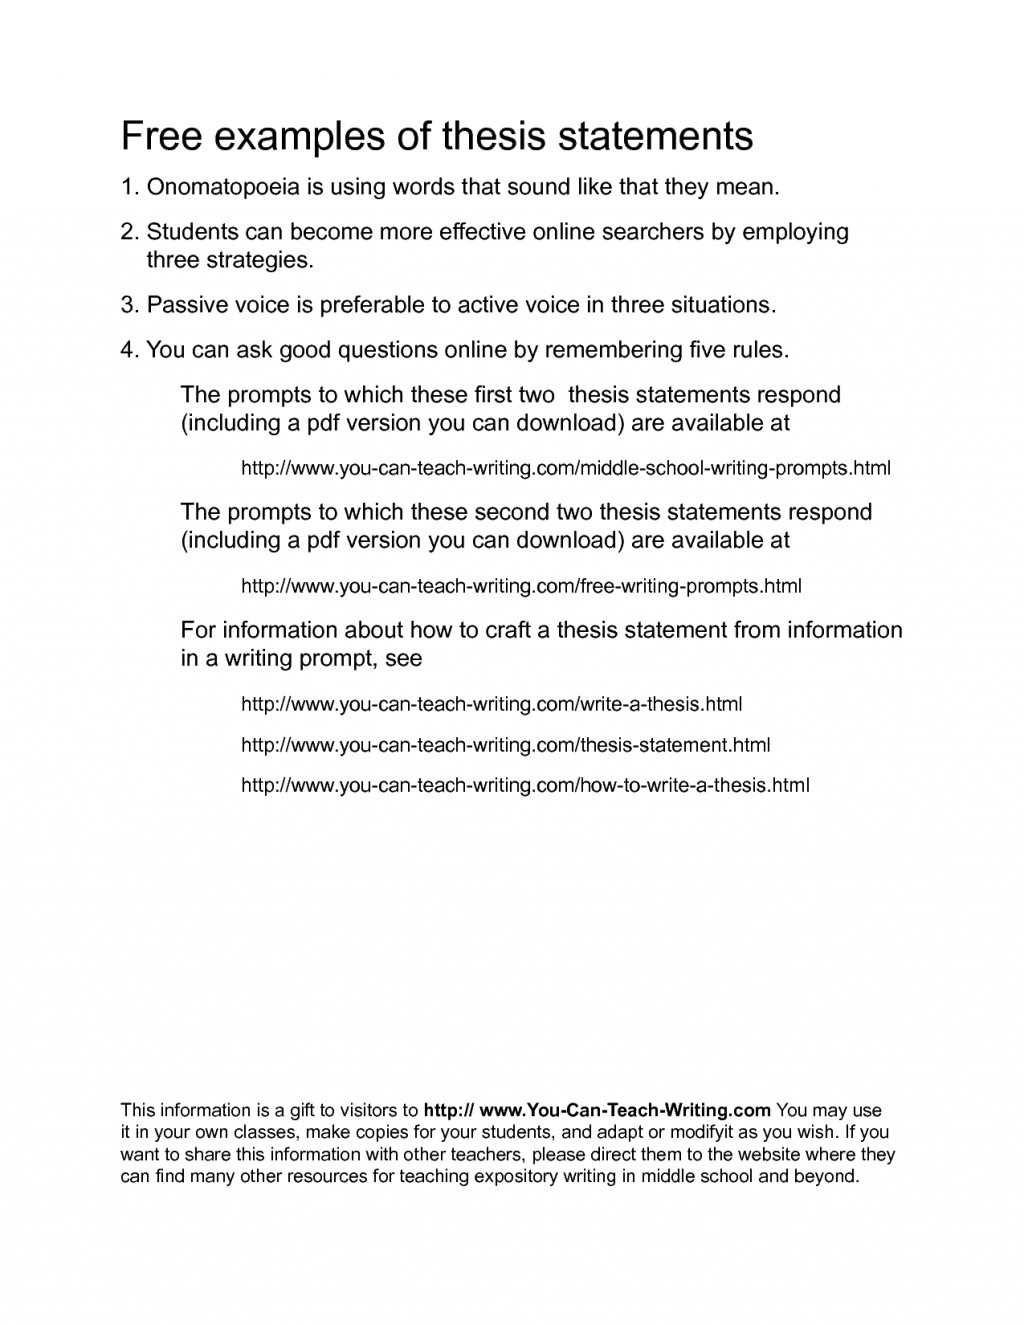 005 Argumentative Research Paper Thesis Examples Essay Statement For Essays Statements Of Comparative Informative College Narrative Compare And Contrast Best Large